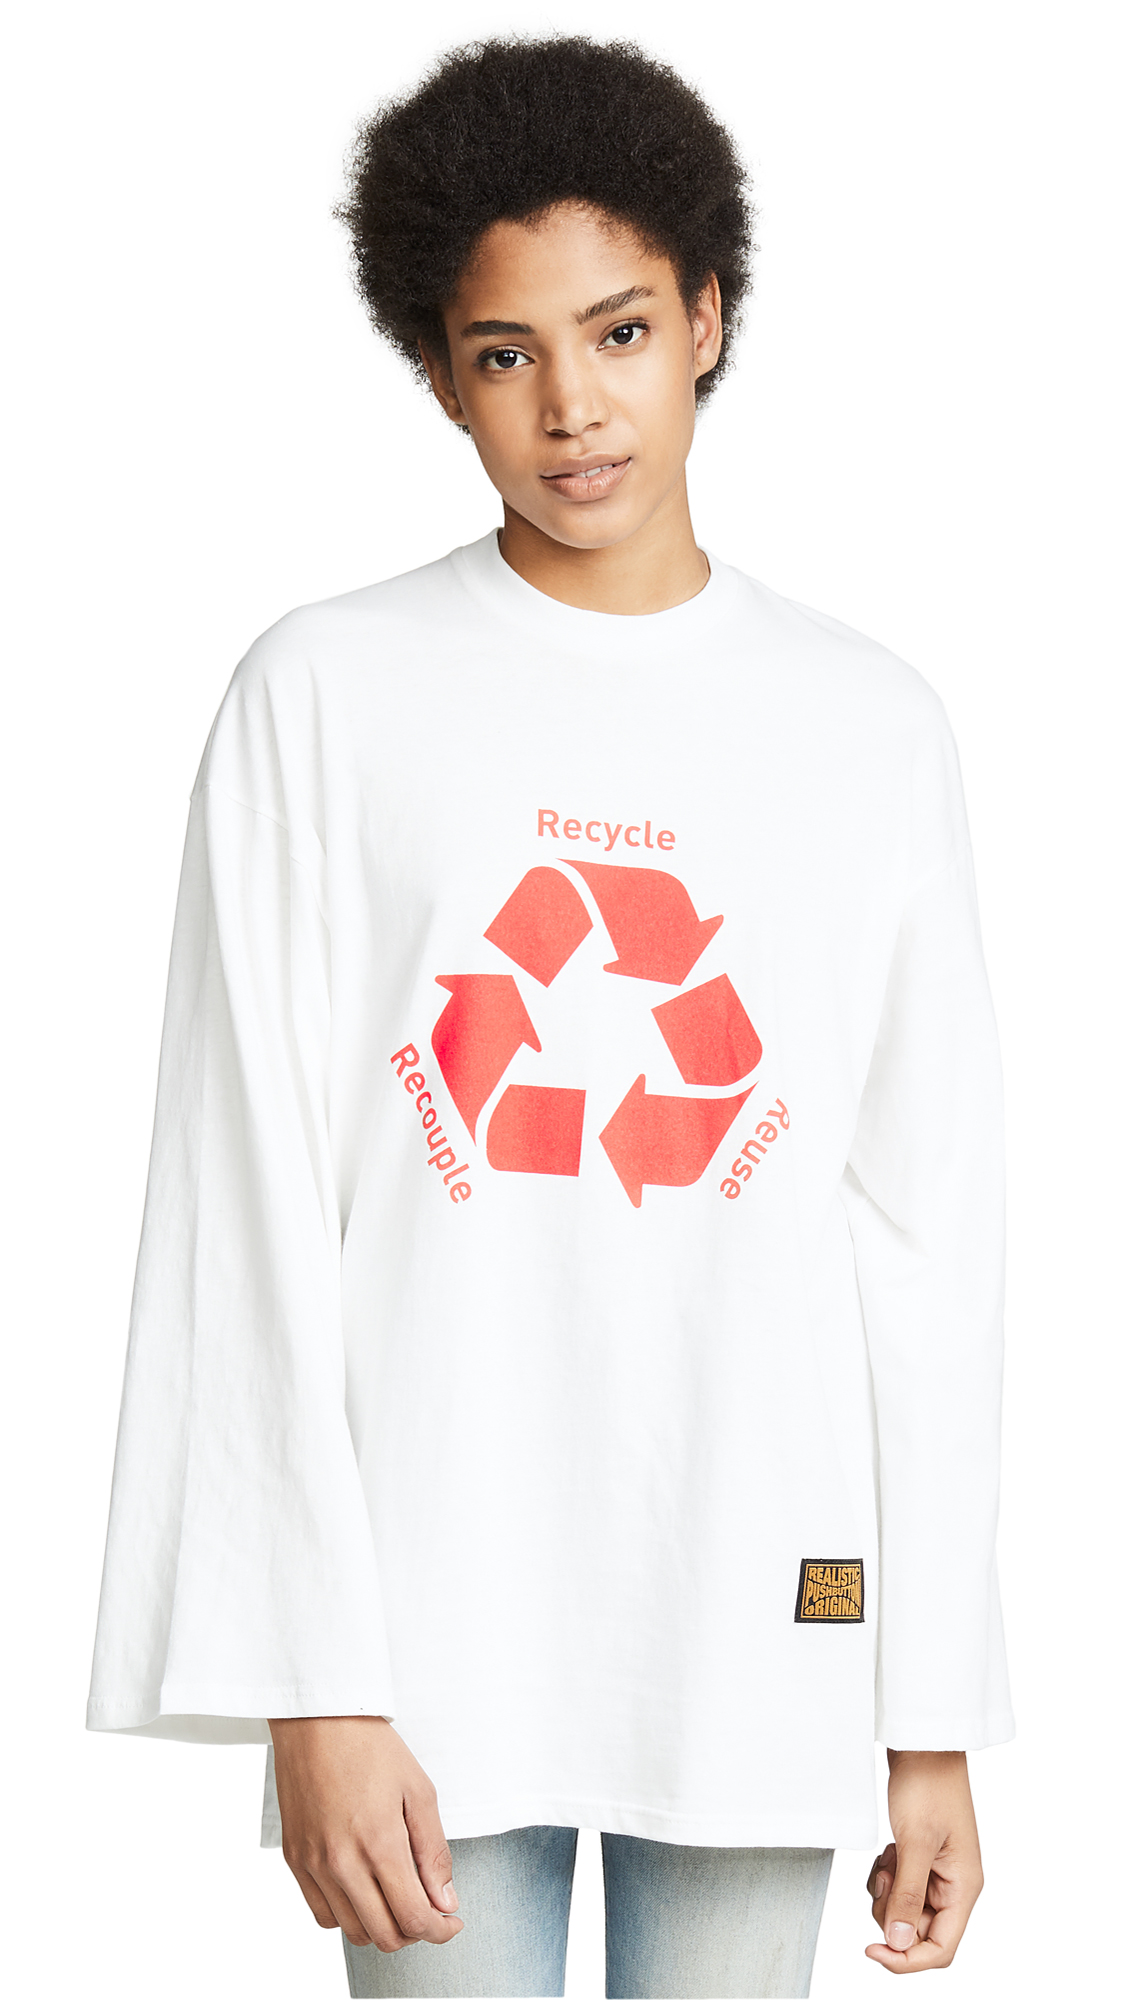 pushBUTTON Recycle Tee In White